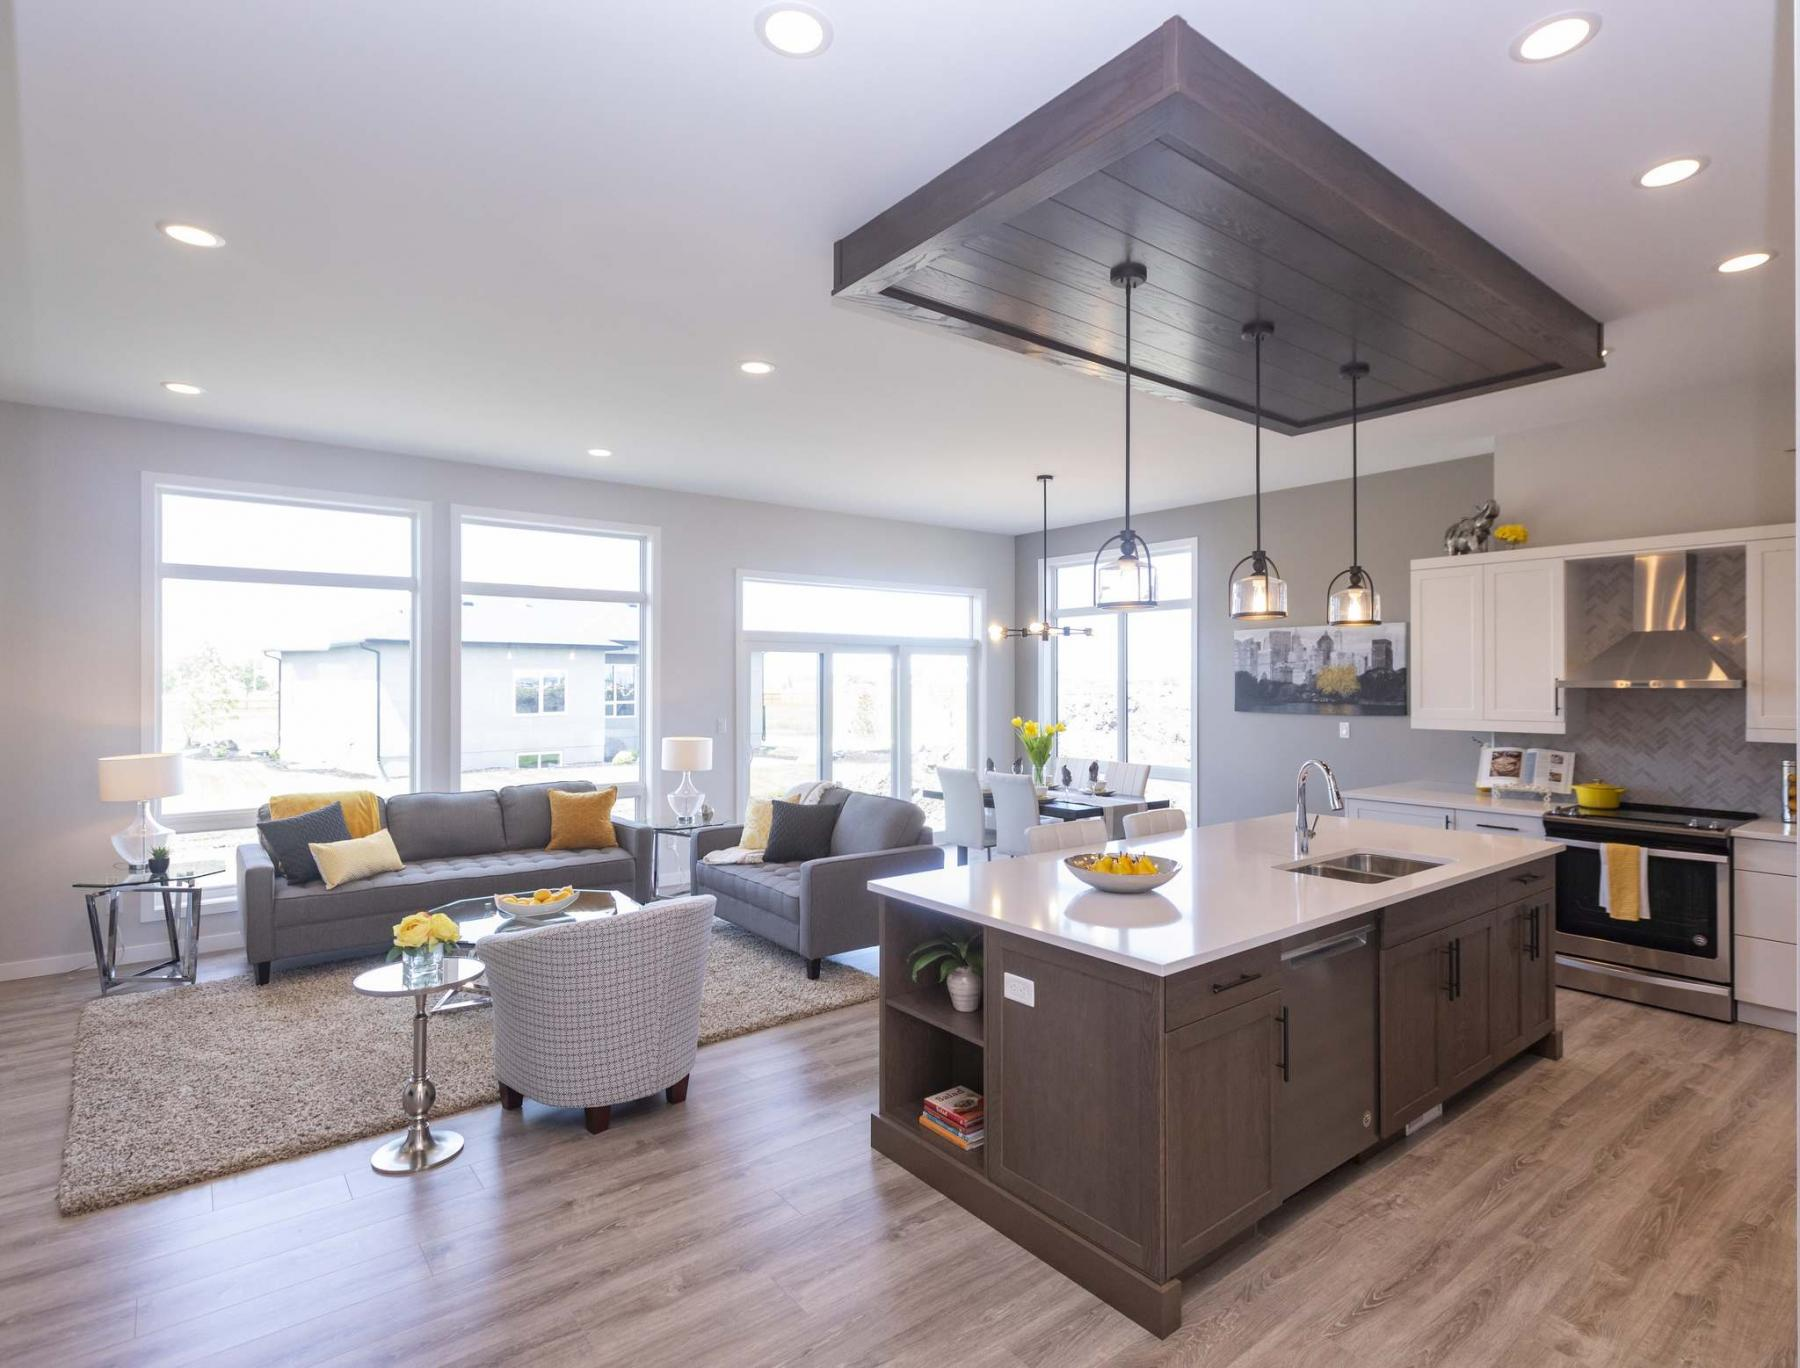 <p>SASHA SEFTER / WINNIPEG FREE PRESS</p><p>The MHBA's Fall Parade of Homes will provide homebuyers with the chance to see first-hand the latest work by 37 of Manitoba's leading homebuilding companies.</p>